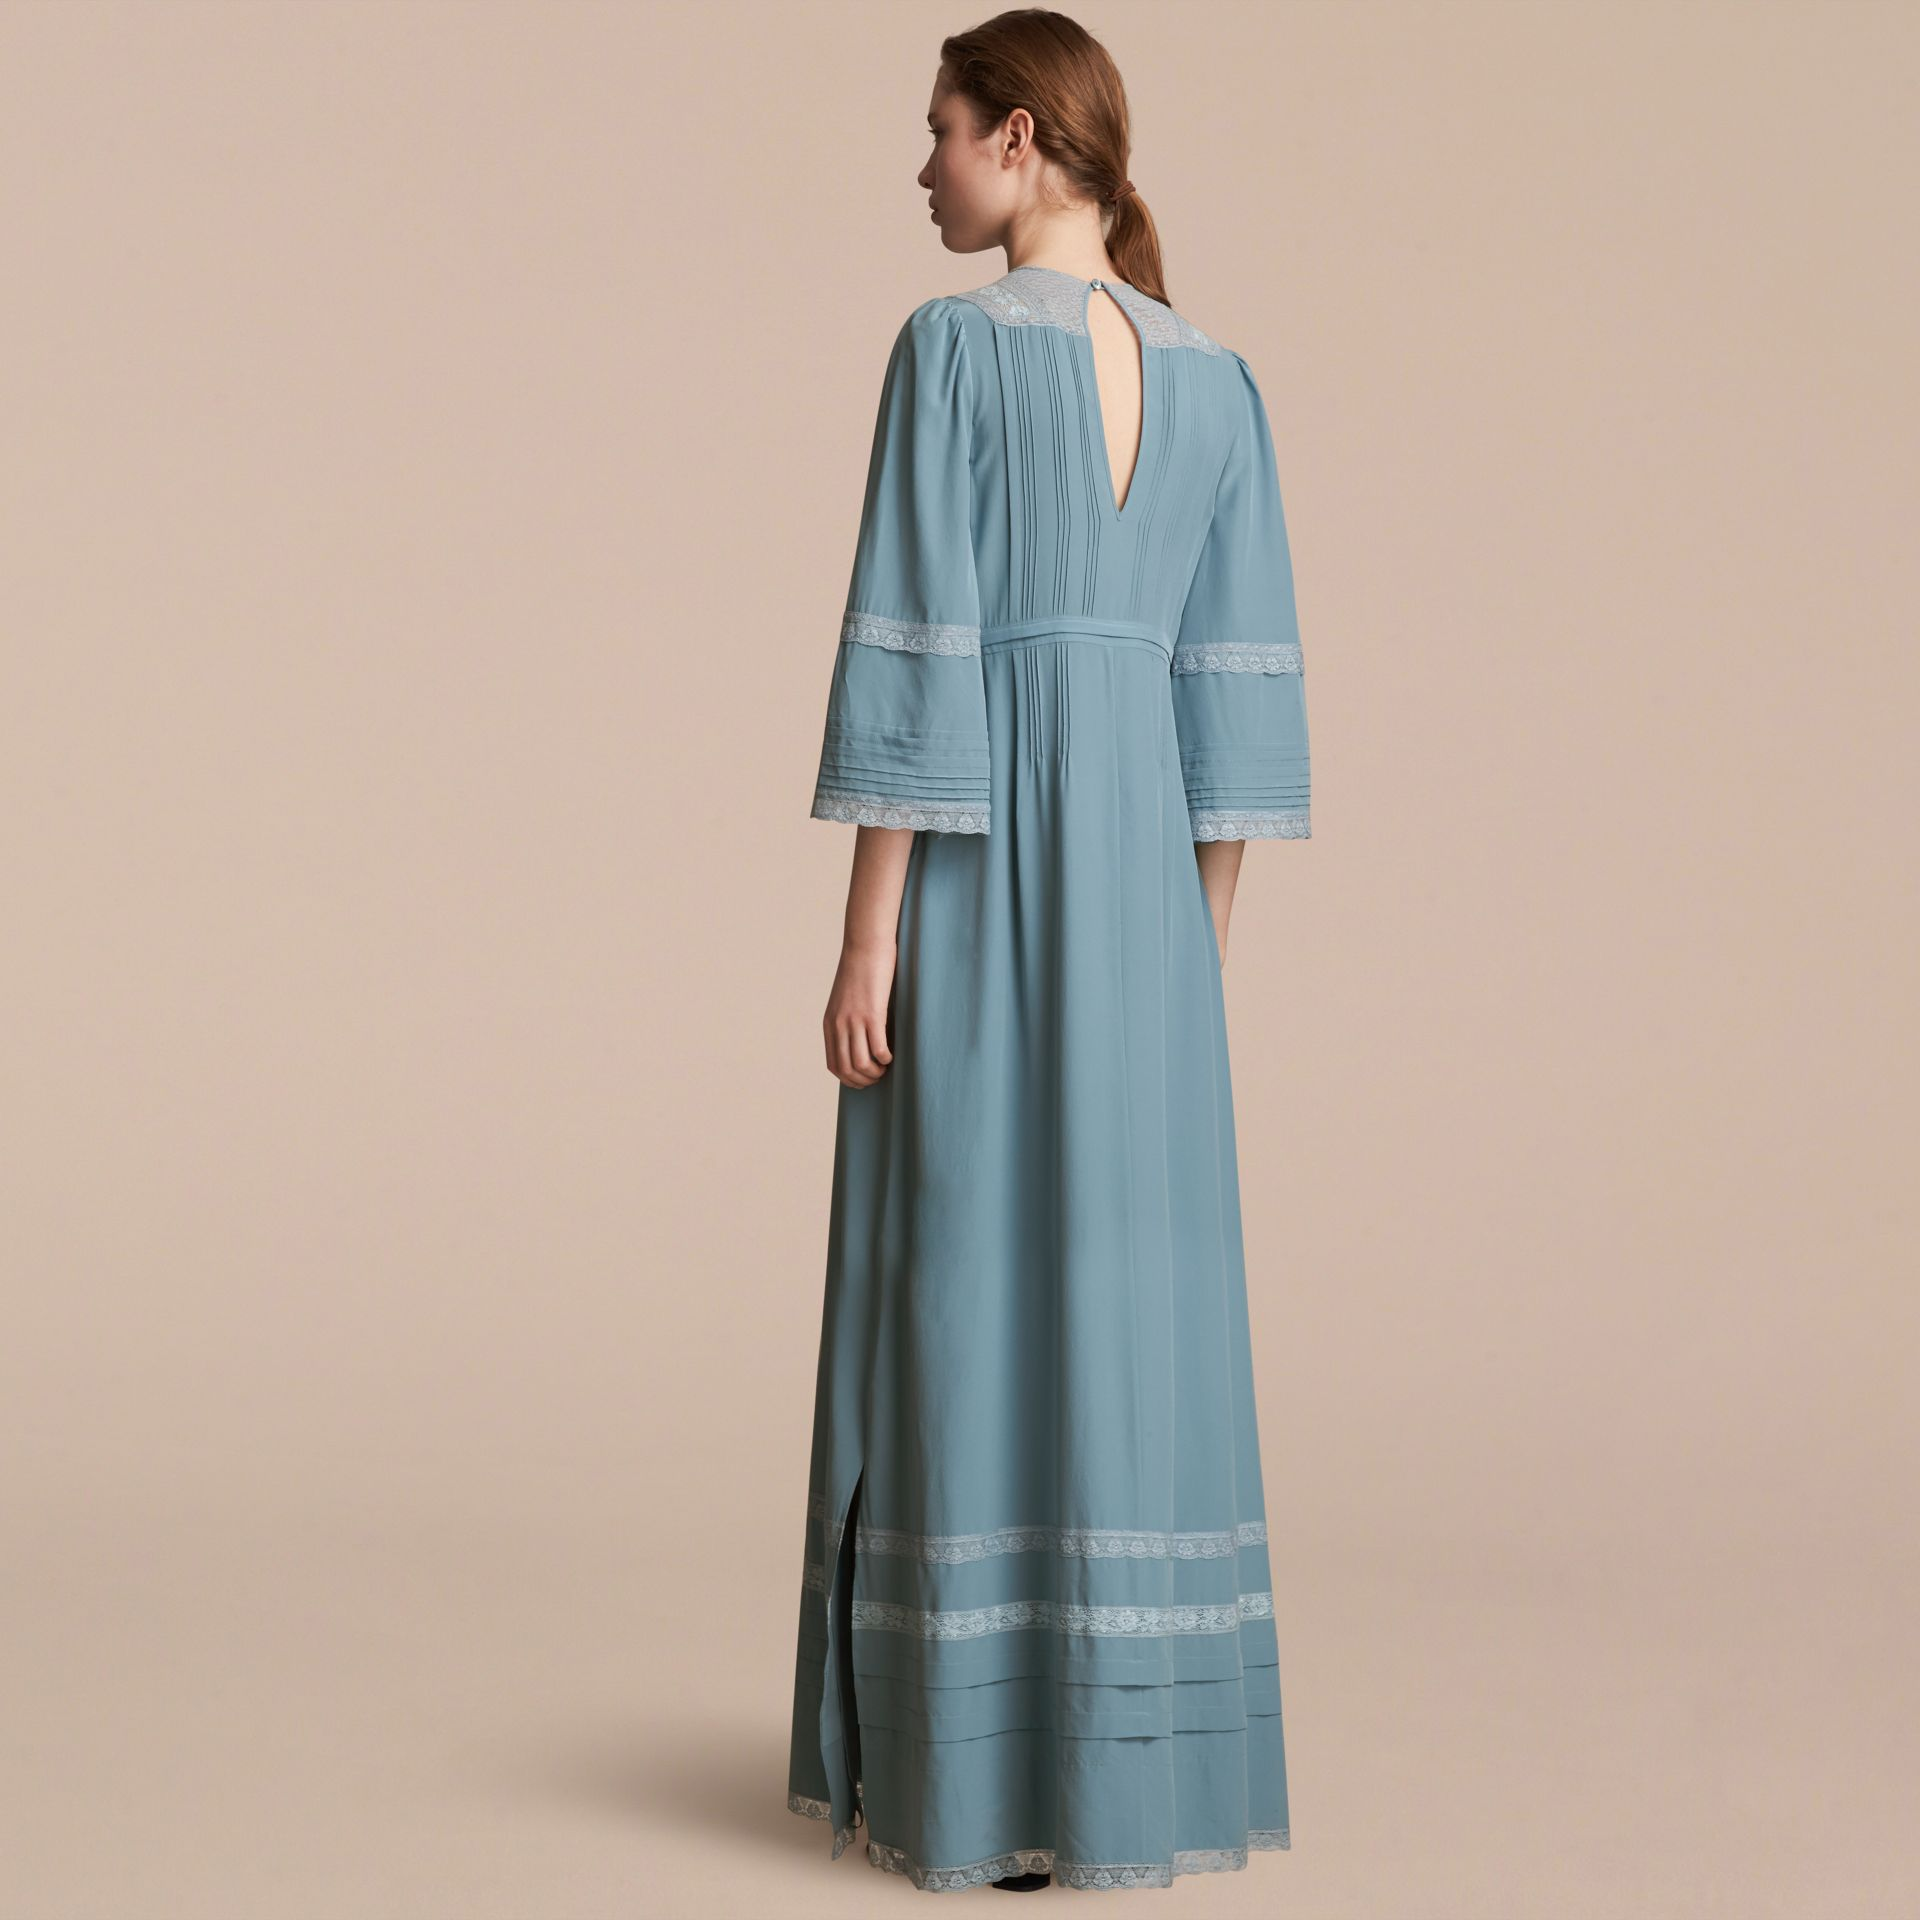 Lace and Pintuck Detail Silk Dress in Bright Mineral Blue - Women | Burberry - gallery image 2